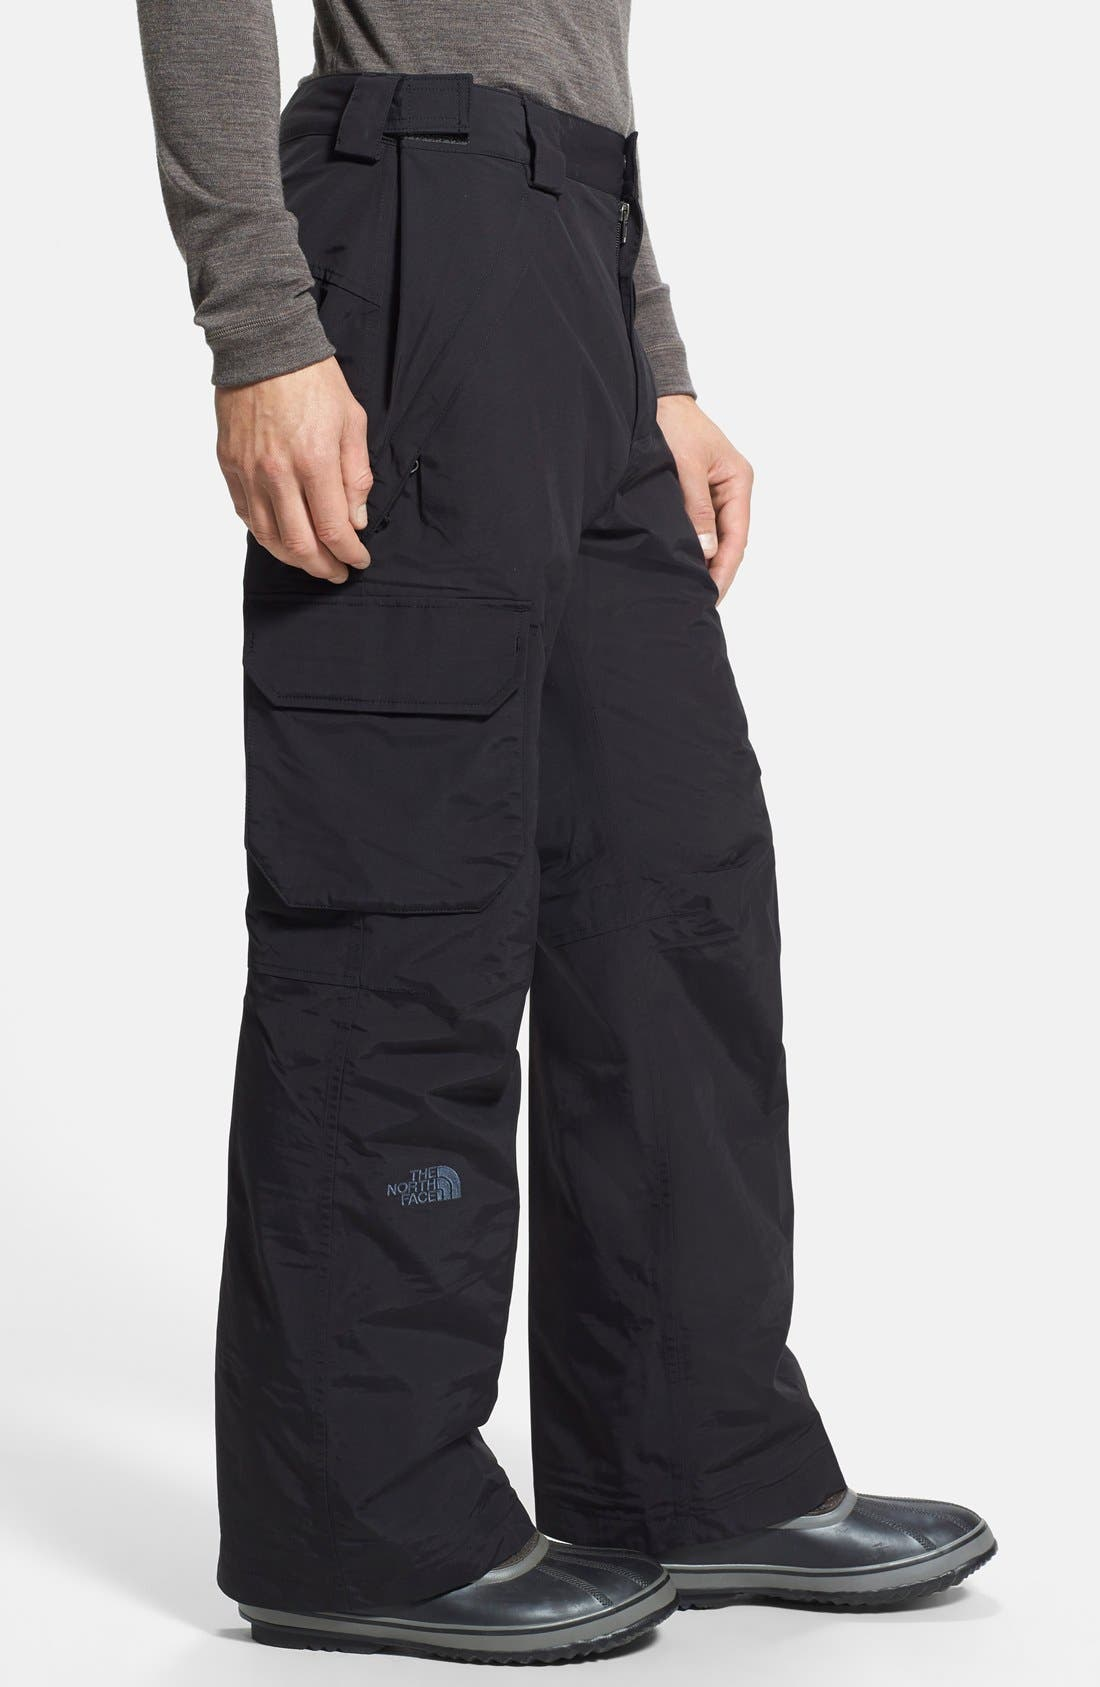 Alternate Image 3  - The North Face 'Seymore' Ski Pants